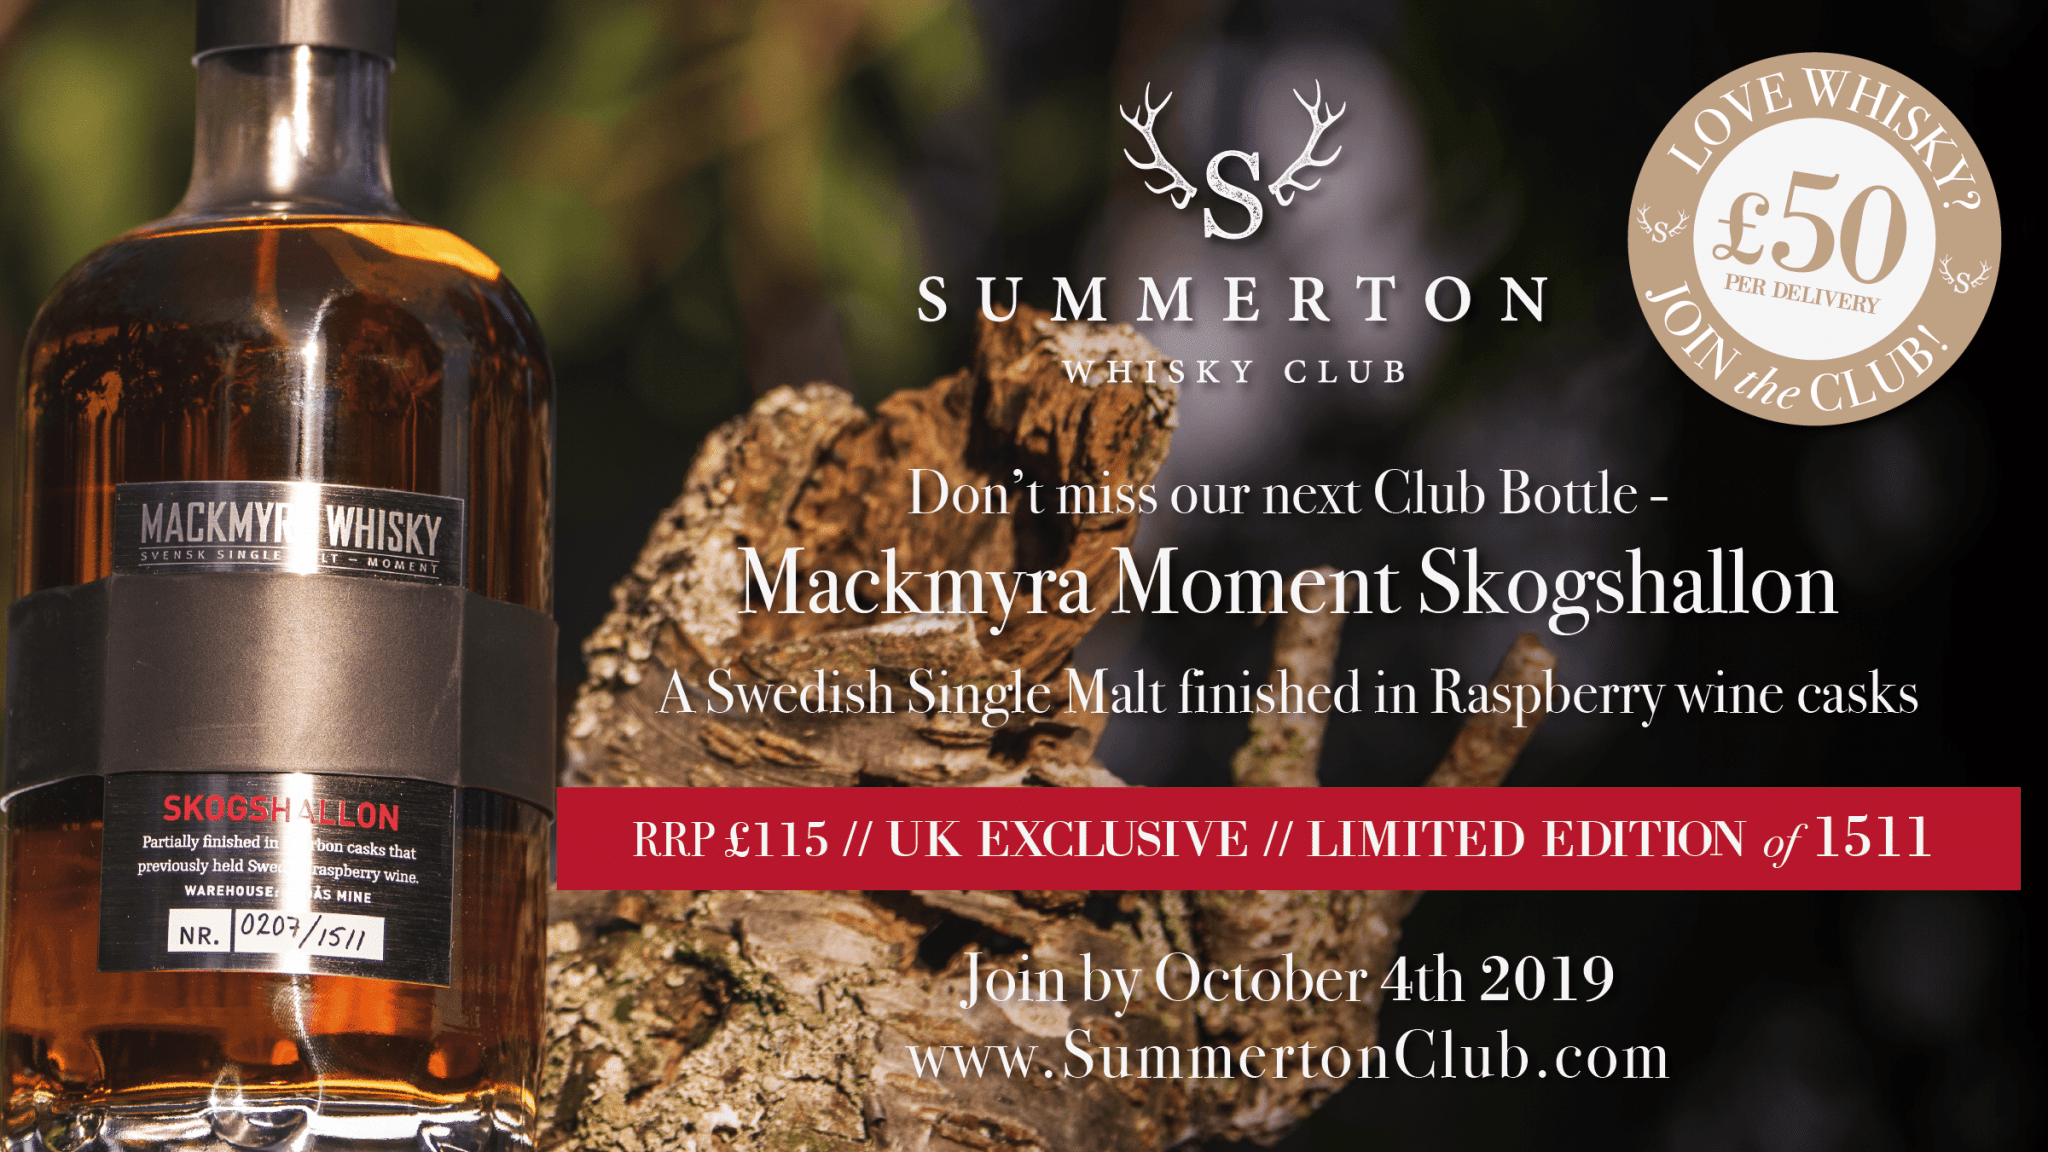 October 2019 – Mackmyra Moment Skogshallon, Summerton Whisky Club